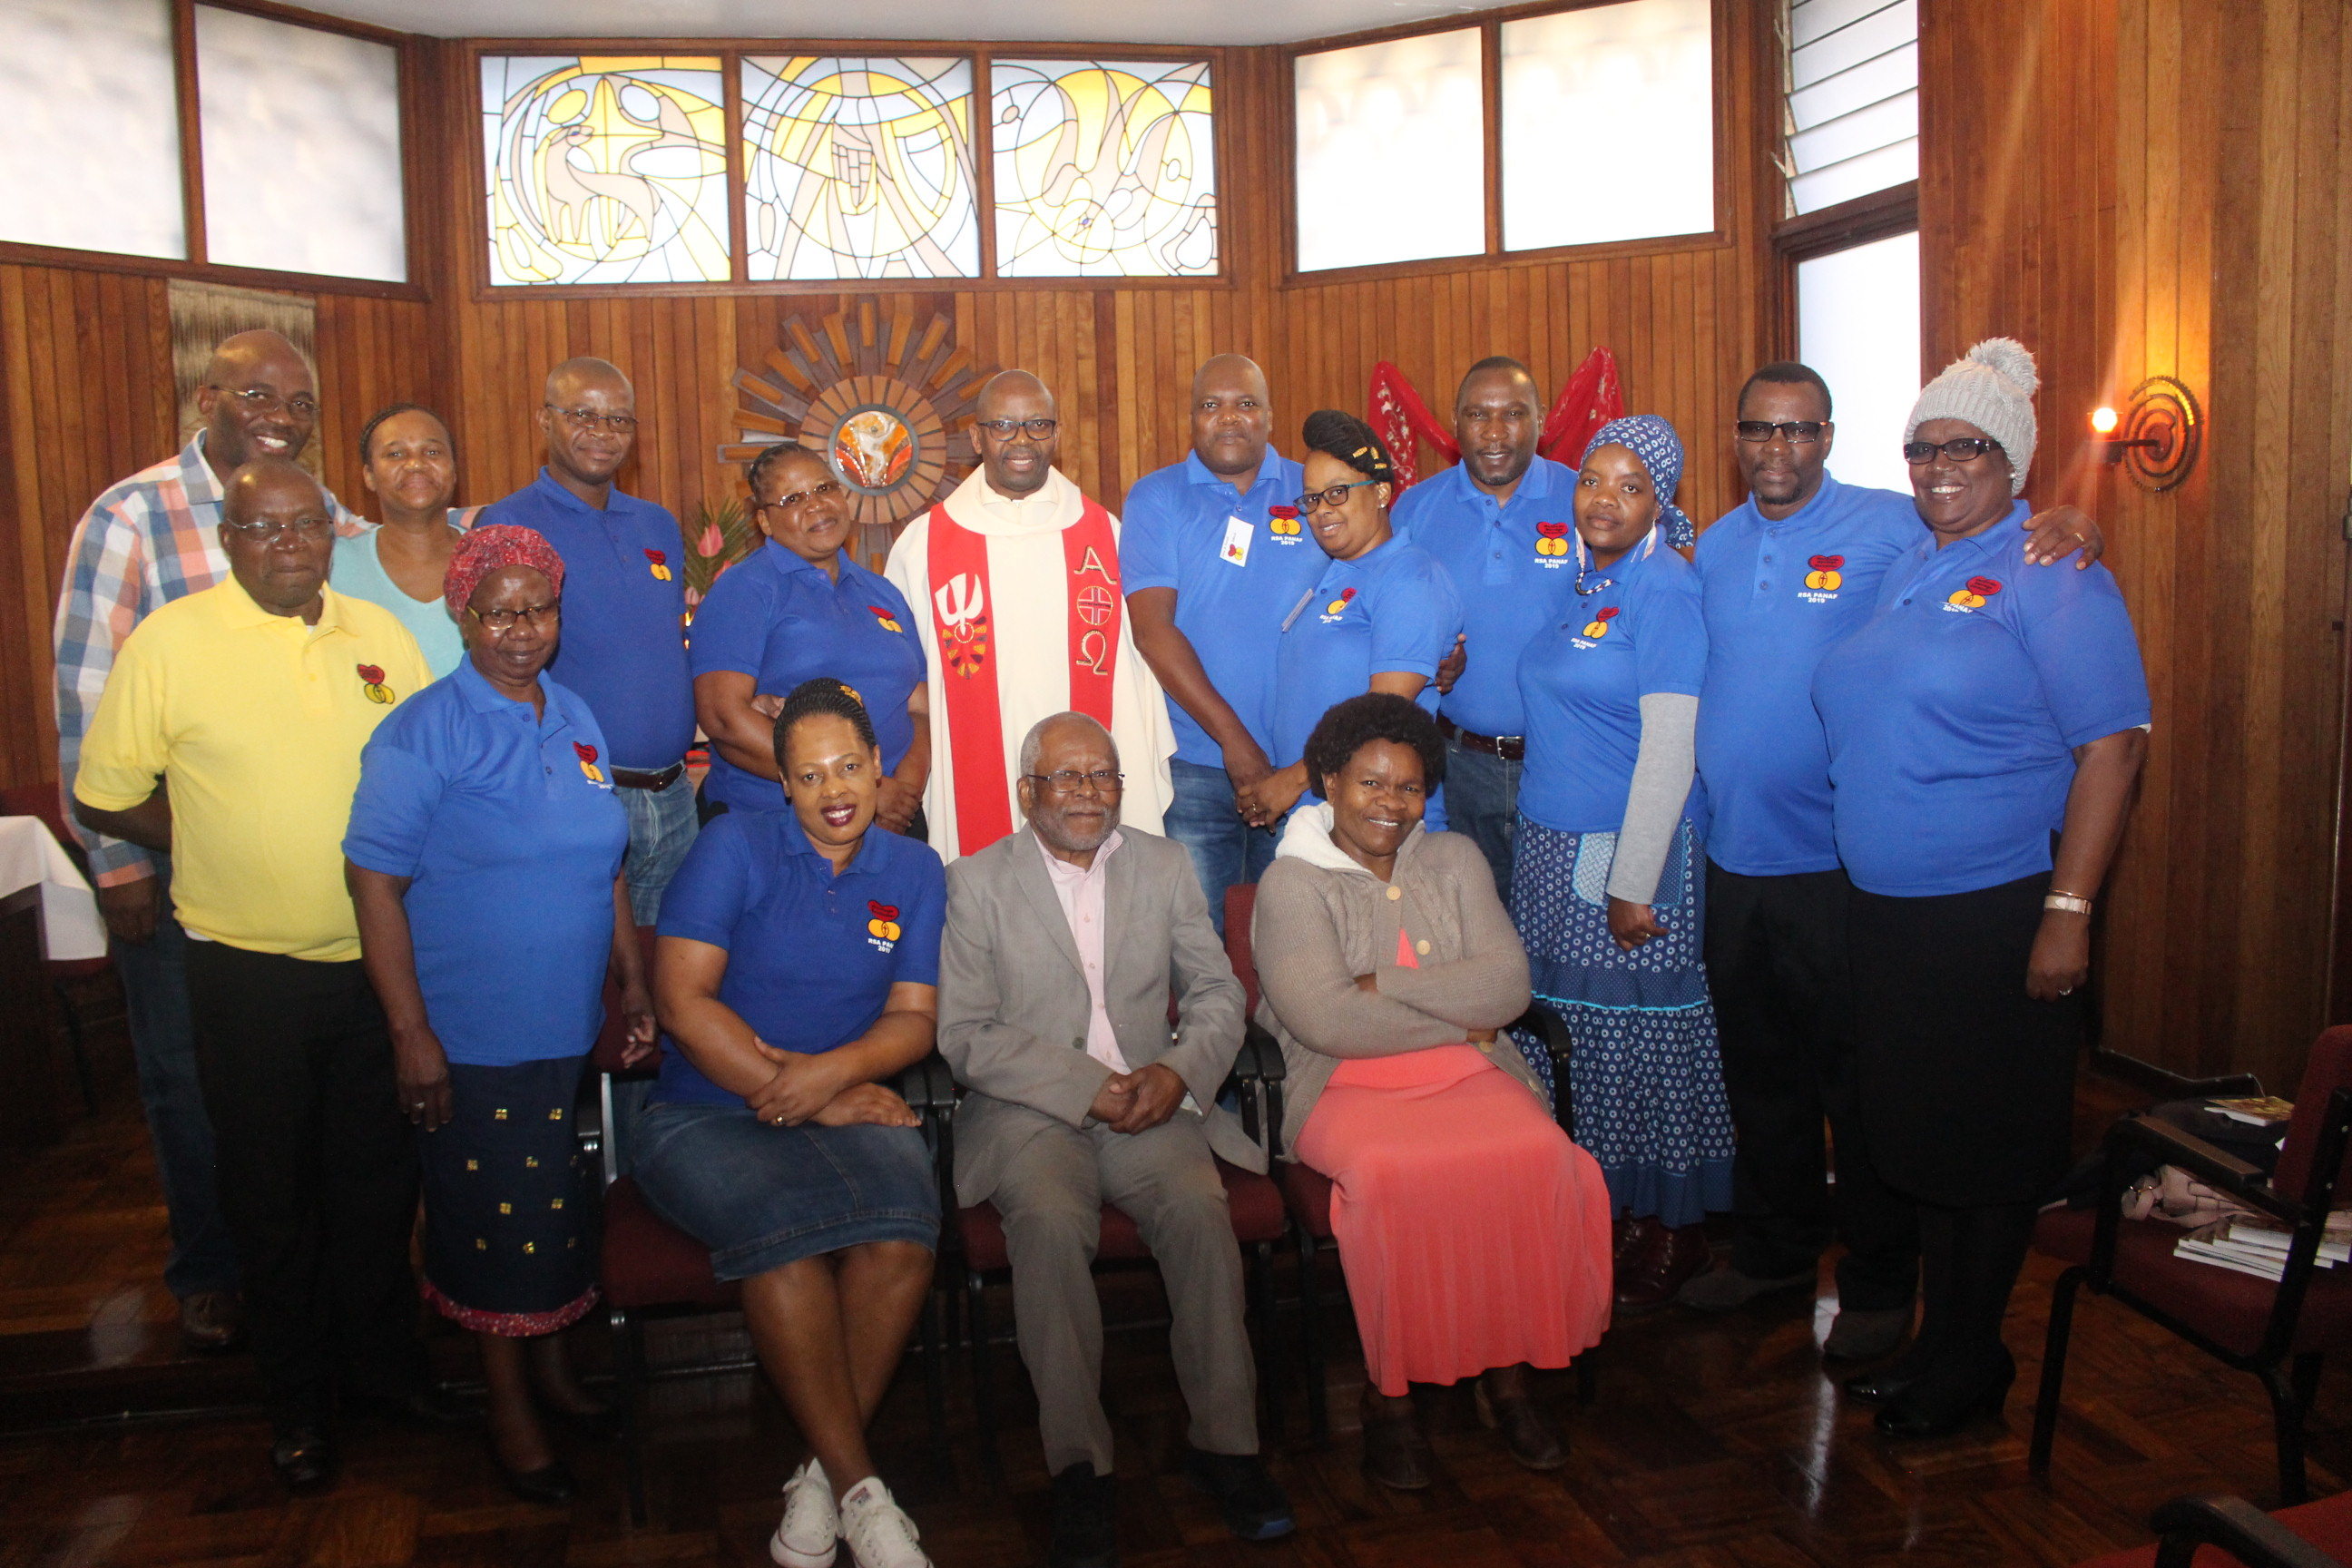 Bishop Zolile Mpambani SCJ with Marriage Encounter Couples at Trefontane – Mariannhill